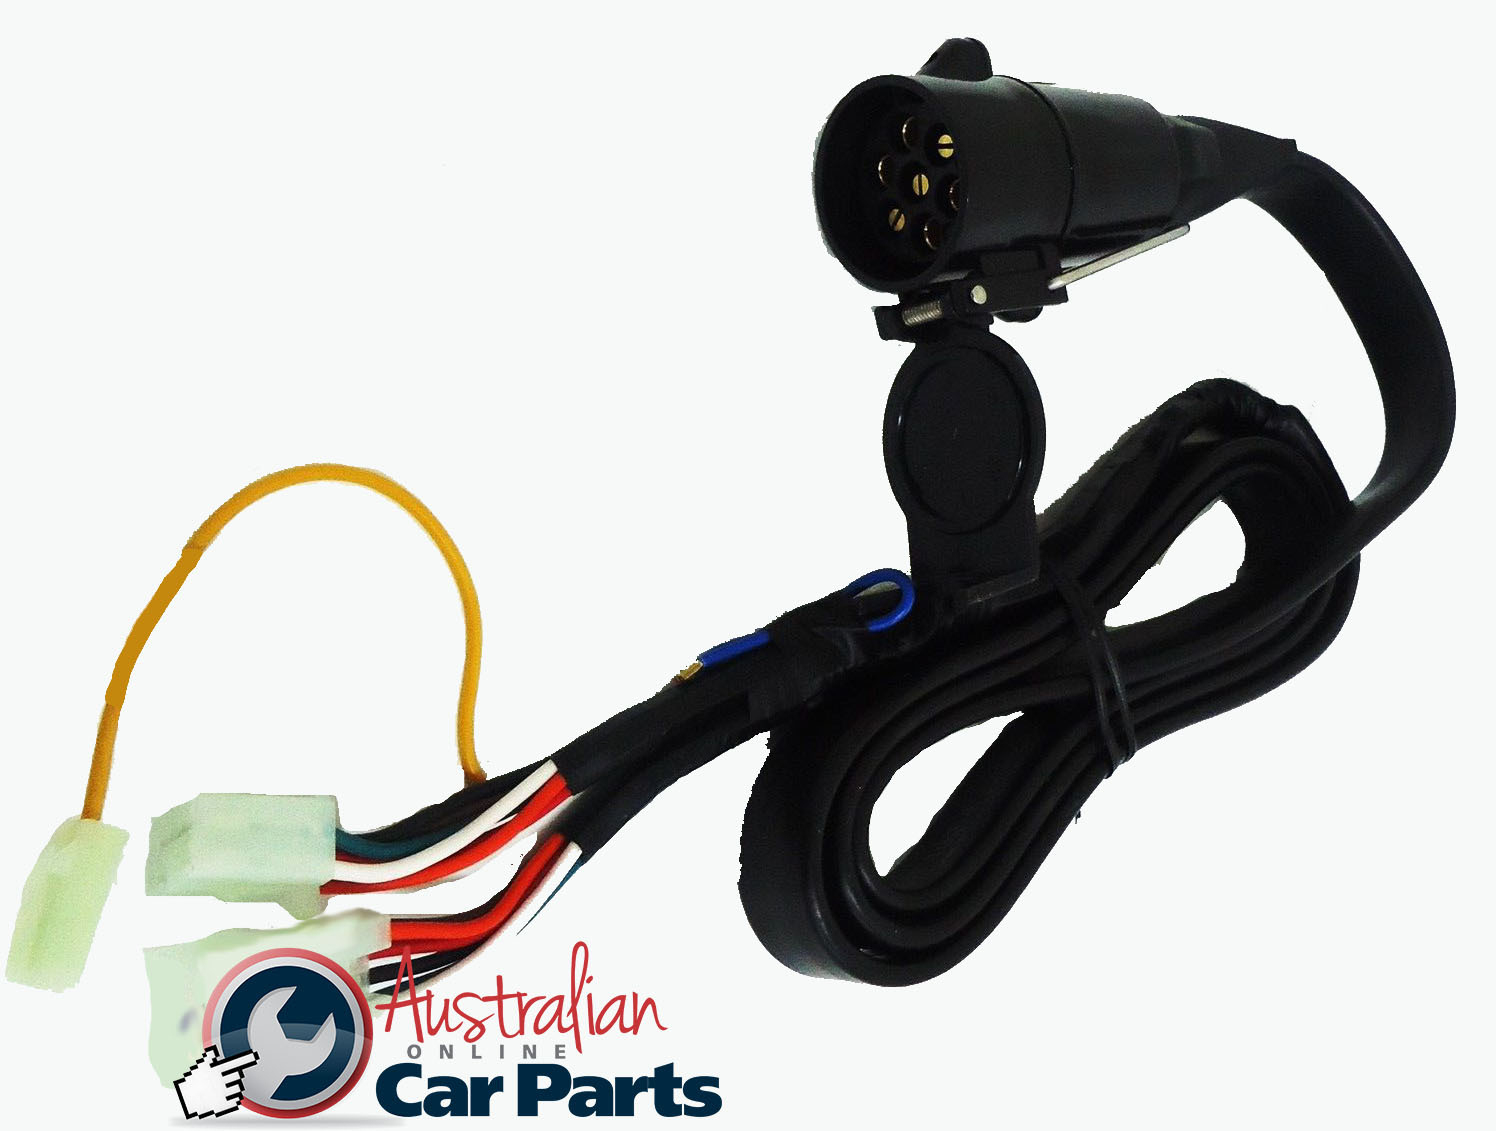 Trailer Wiring Harness Suitable For Holden Commodore Vt Vx Vy Vz - Vy Commodore Trailer Wiring Diagram